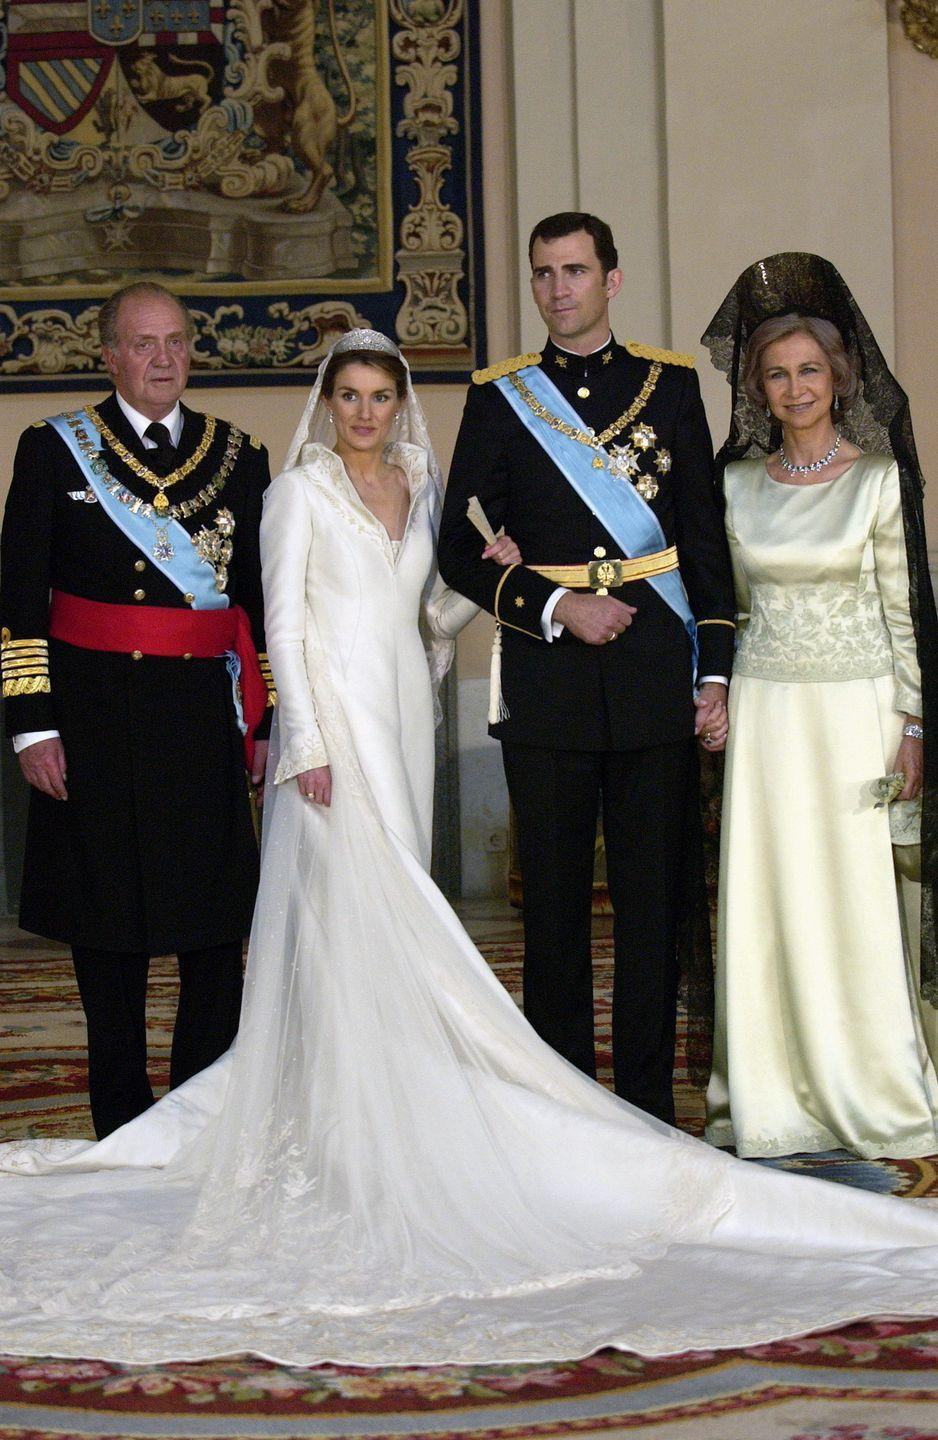 <p><strong>When: </strong>May 22, 2004 </p><p><strong>Where: </strong>The Cathedral Santa María la Real de la Almudena in Madrid</p><p><strong>Cost: </strong>£6 million</p><p><strong>Designer: </strong>Royal couturier Manuel Pertegaz</p><p><strong>Most royal detail: </strong>The real gold thread embroidery woven into the silk.</p>